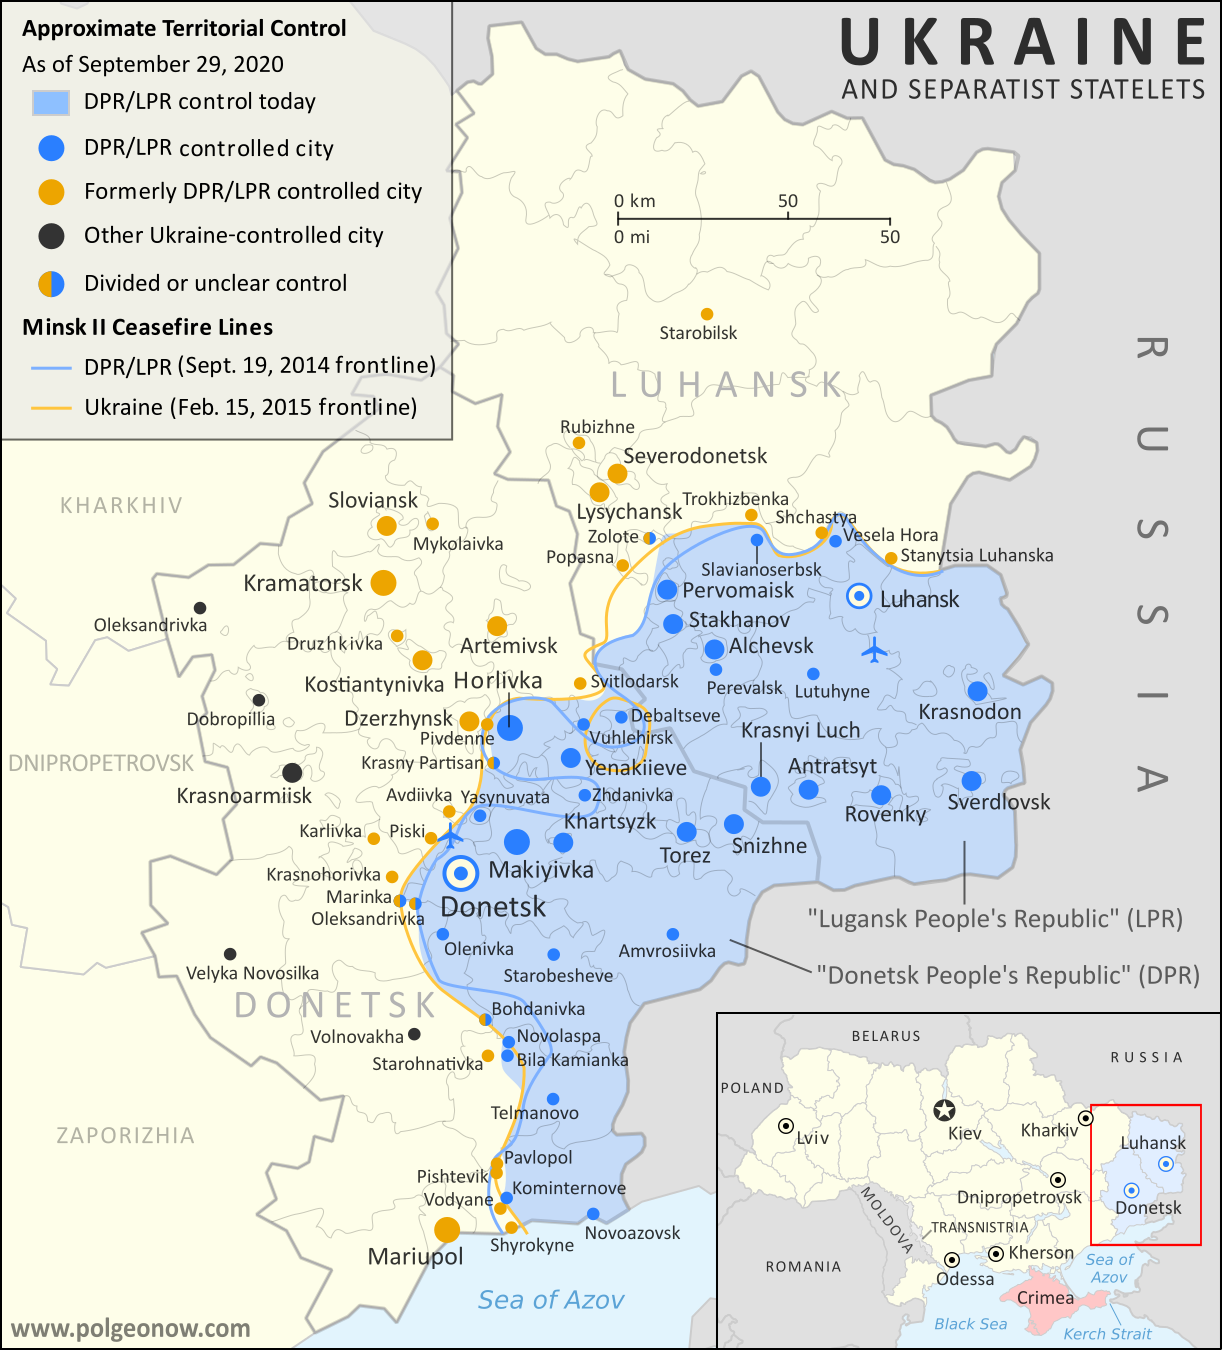 Map of territorial control and frontlines in the Donbass region of Donetsk and Luhansk, internationally recognized as part of eastern Ukraine but partly controlled by the breakaway Donetsk People's Republic and Lugansk People's Republic. Updated for September 2020, with Minsk ceasefire lines shown. Colorblind accessible.